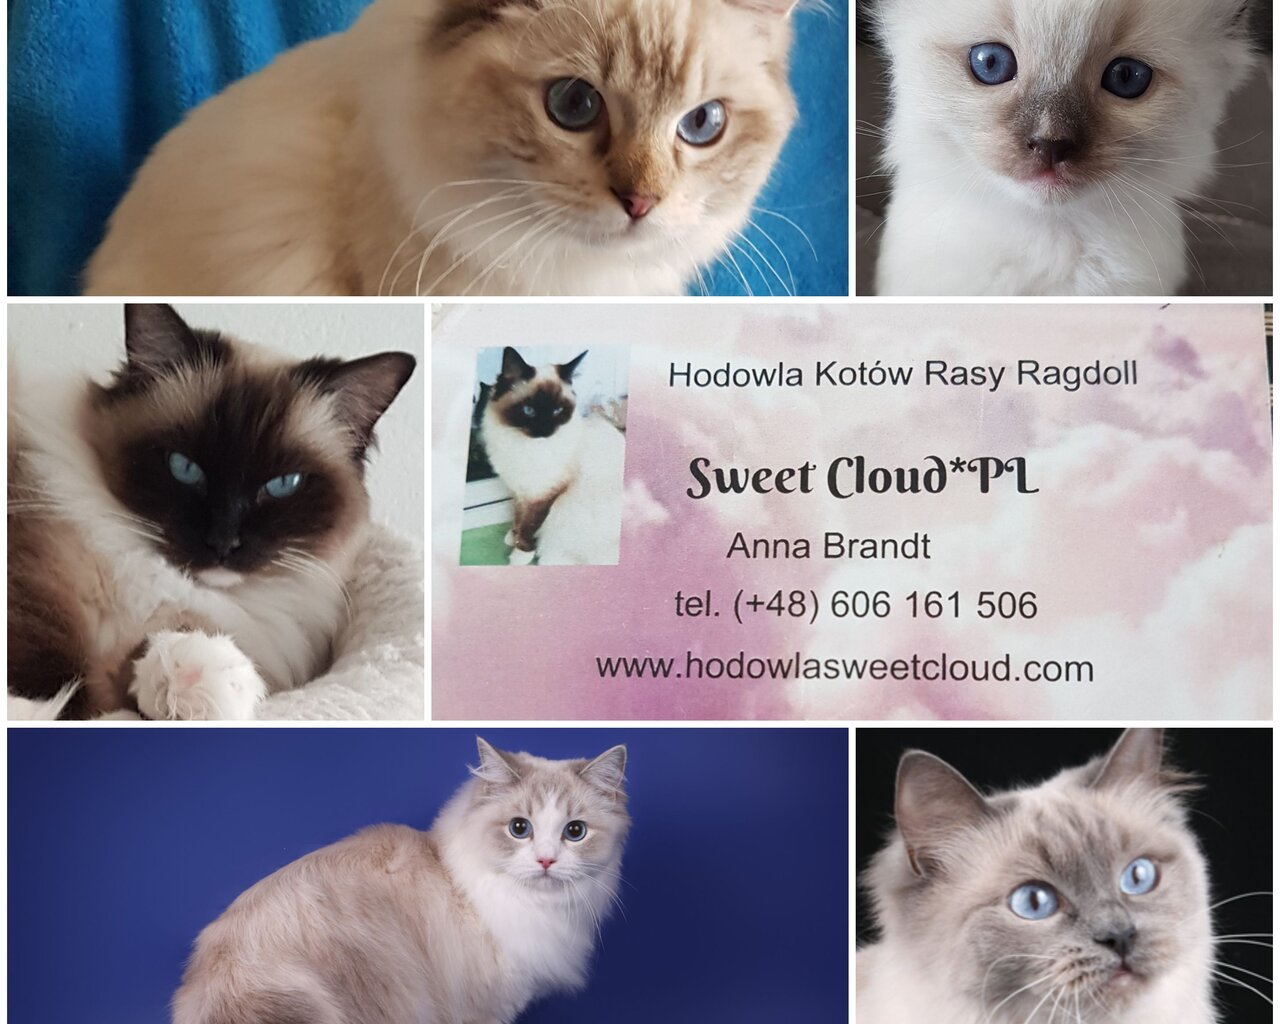 SWEET CLOUD*PL Promoted breeding centres – WORLDPETNET #12